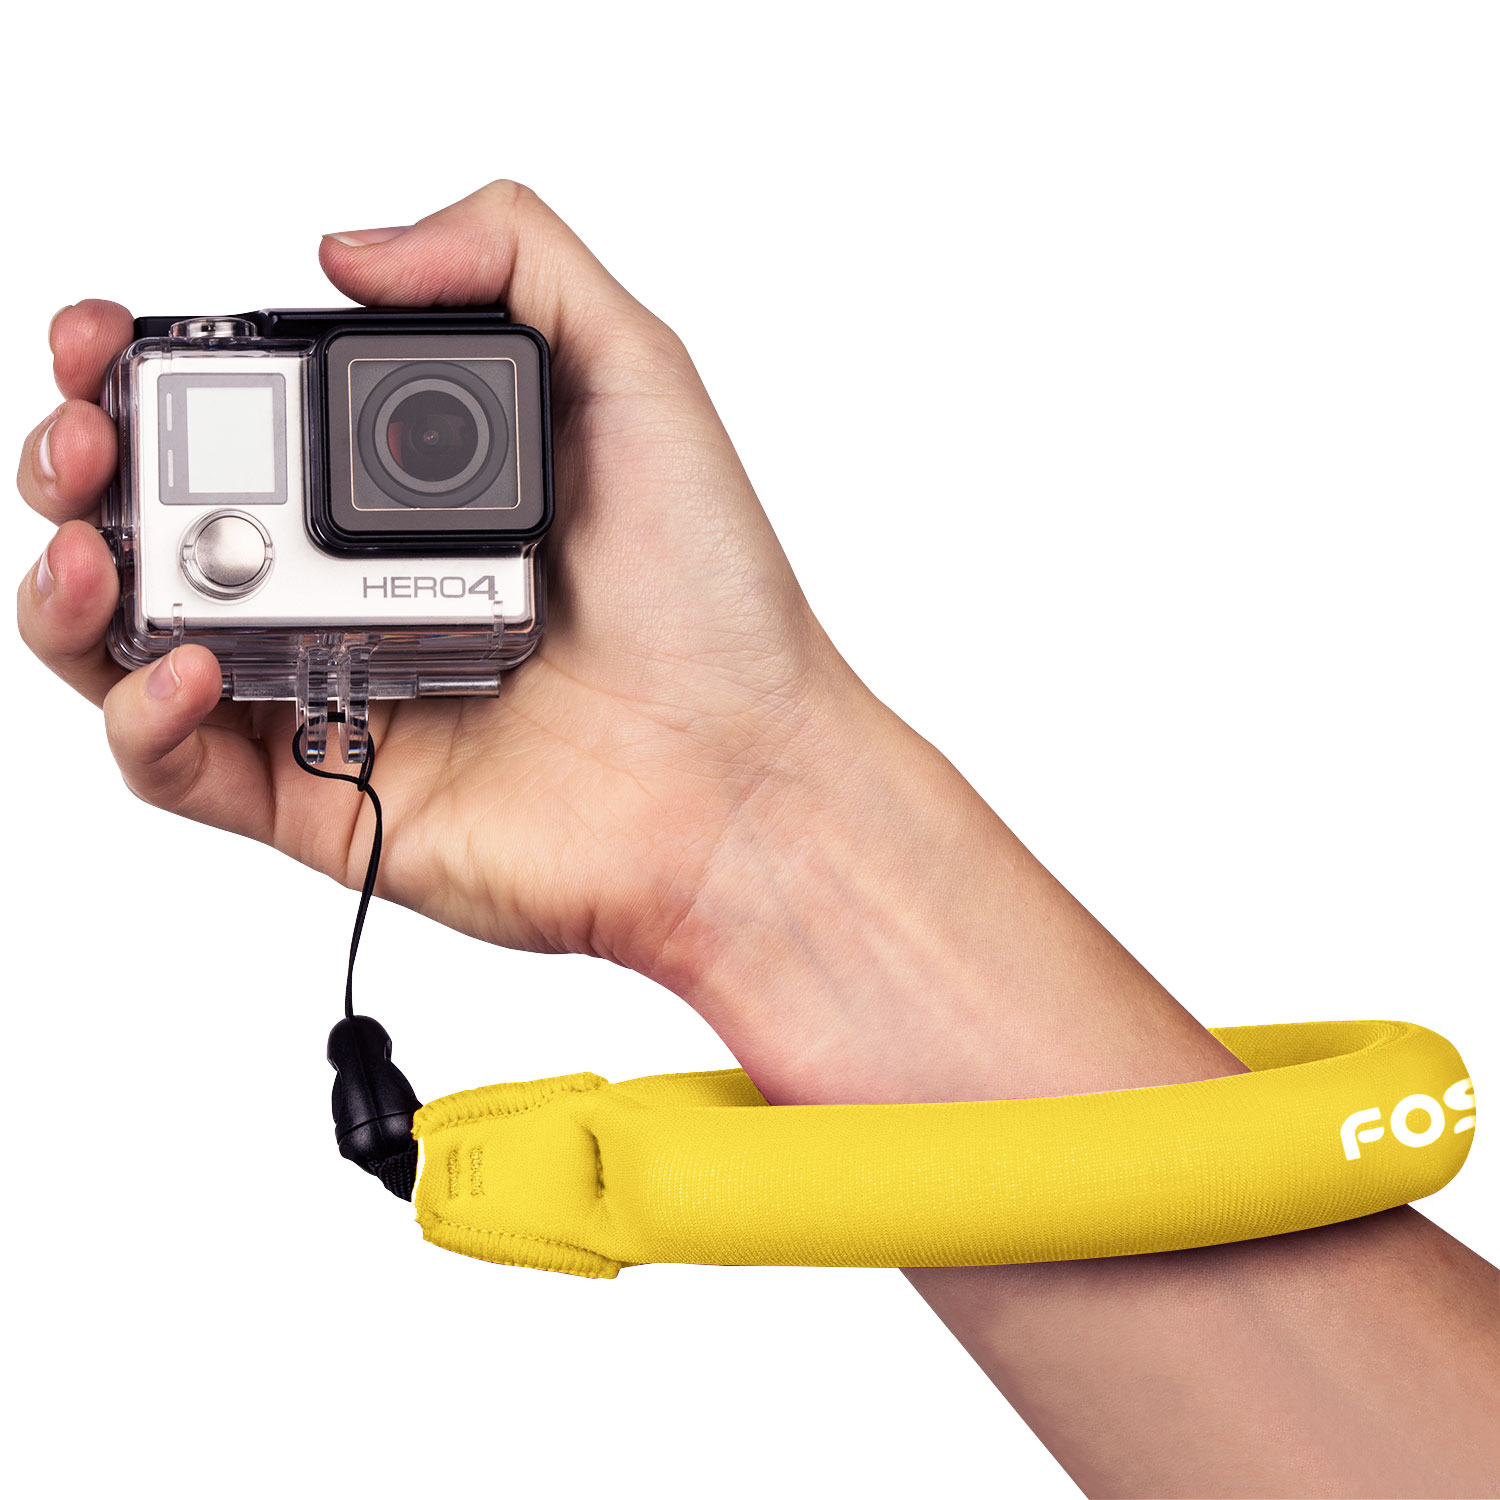 Fosmon Floating Camera Strap Universal Floating Wrist Strap for GoPro, Waterproof Camera, Phone, Keys and More (Yellow)